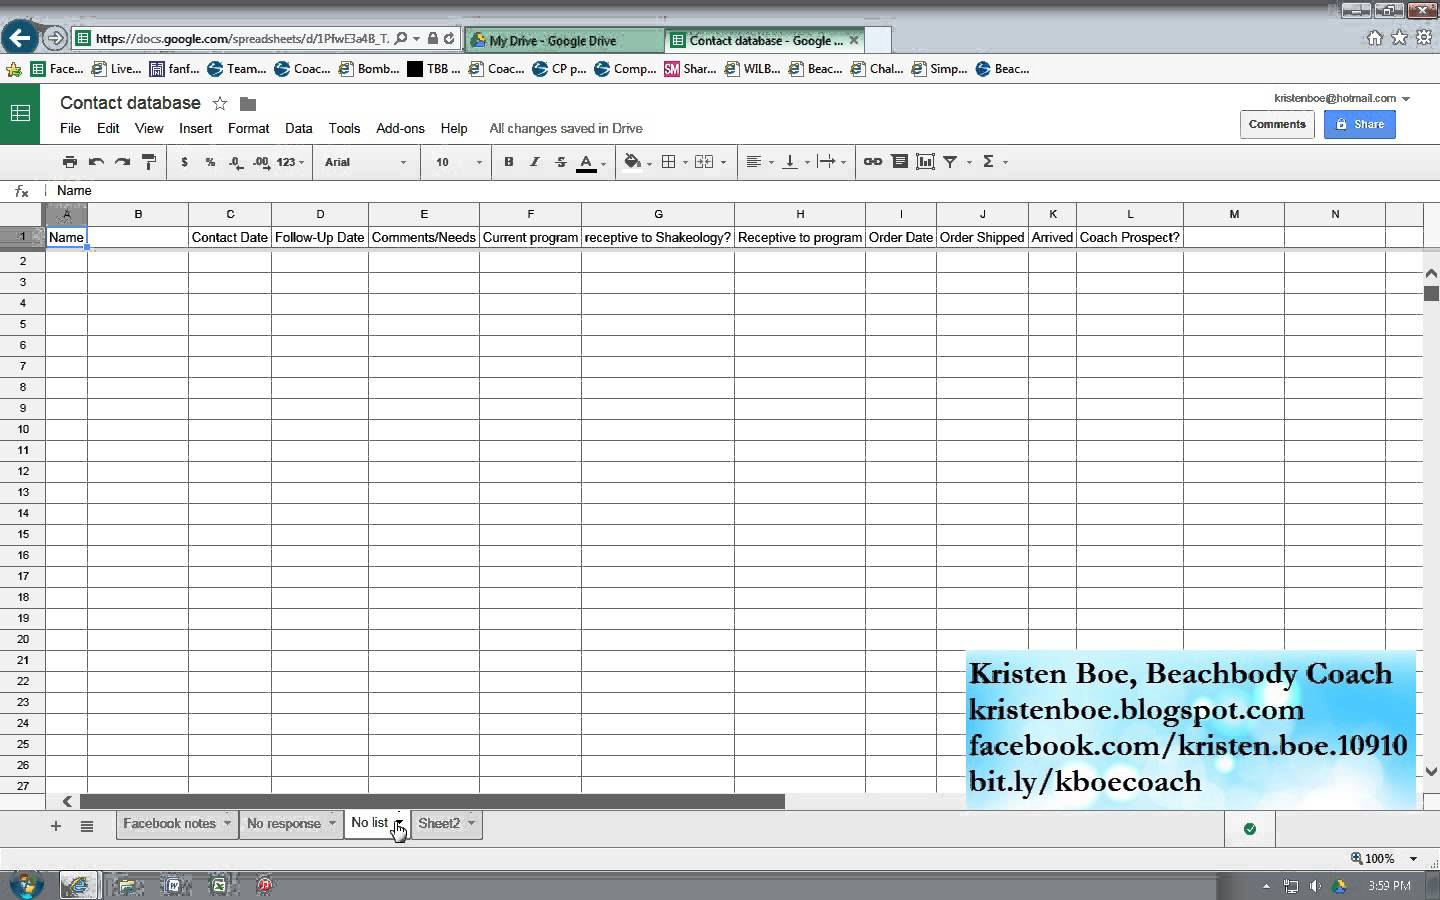 Customer Spreadsheet For Tracking Beachbody Customers Leads Form Invite And Follow Up